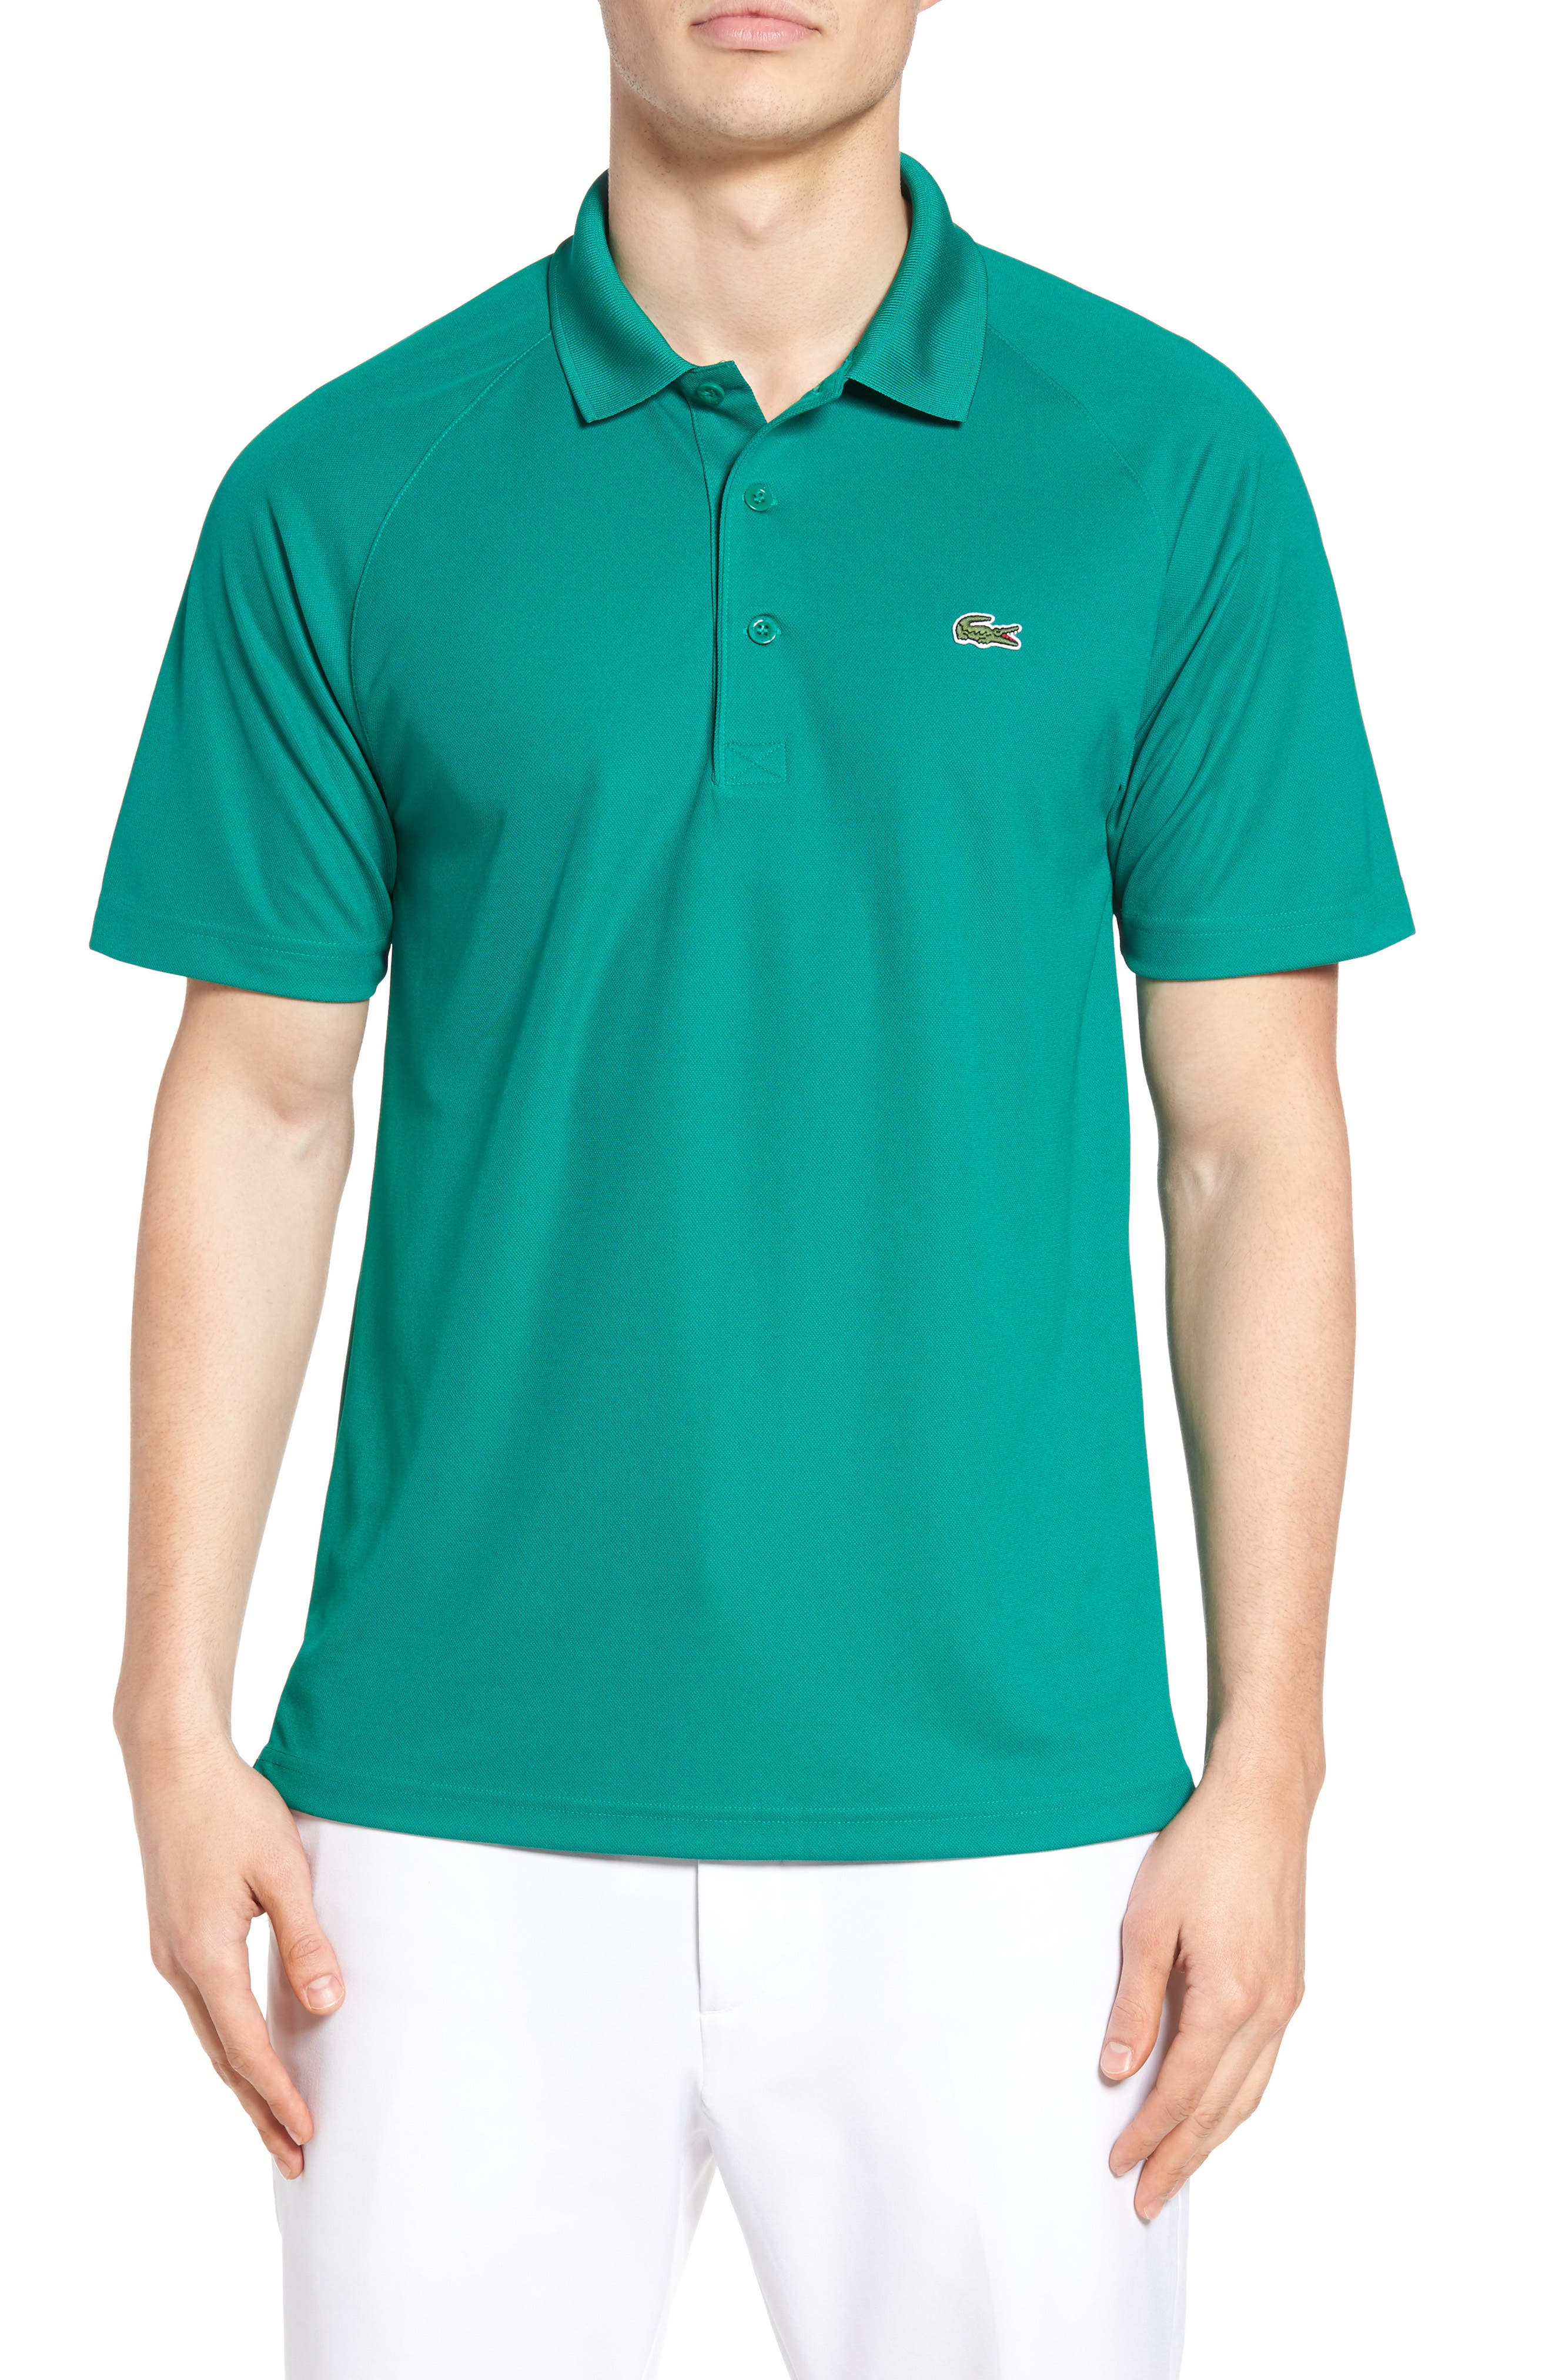 Lacoste 'Sport' Raglan Ultra Dry Performance Polo